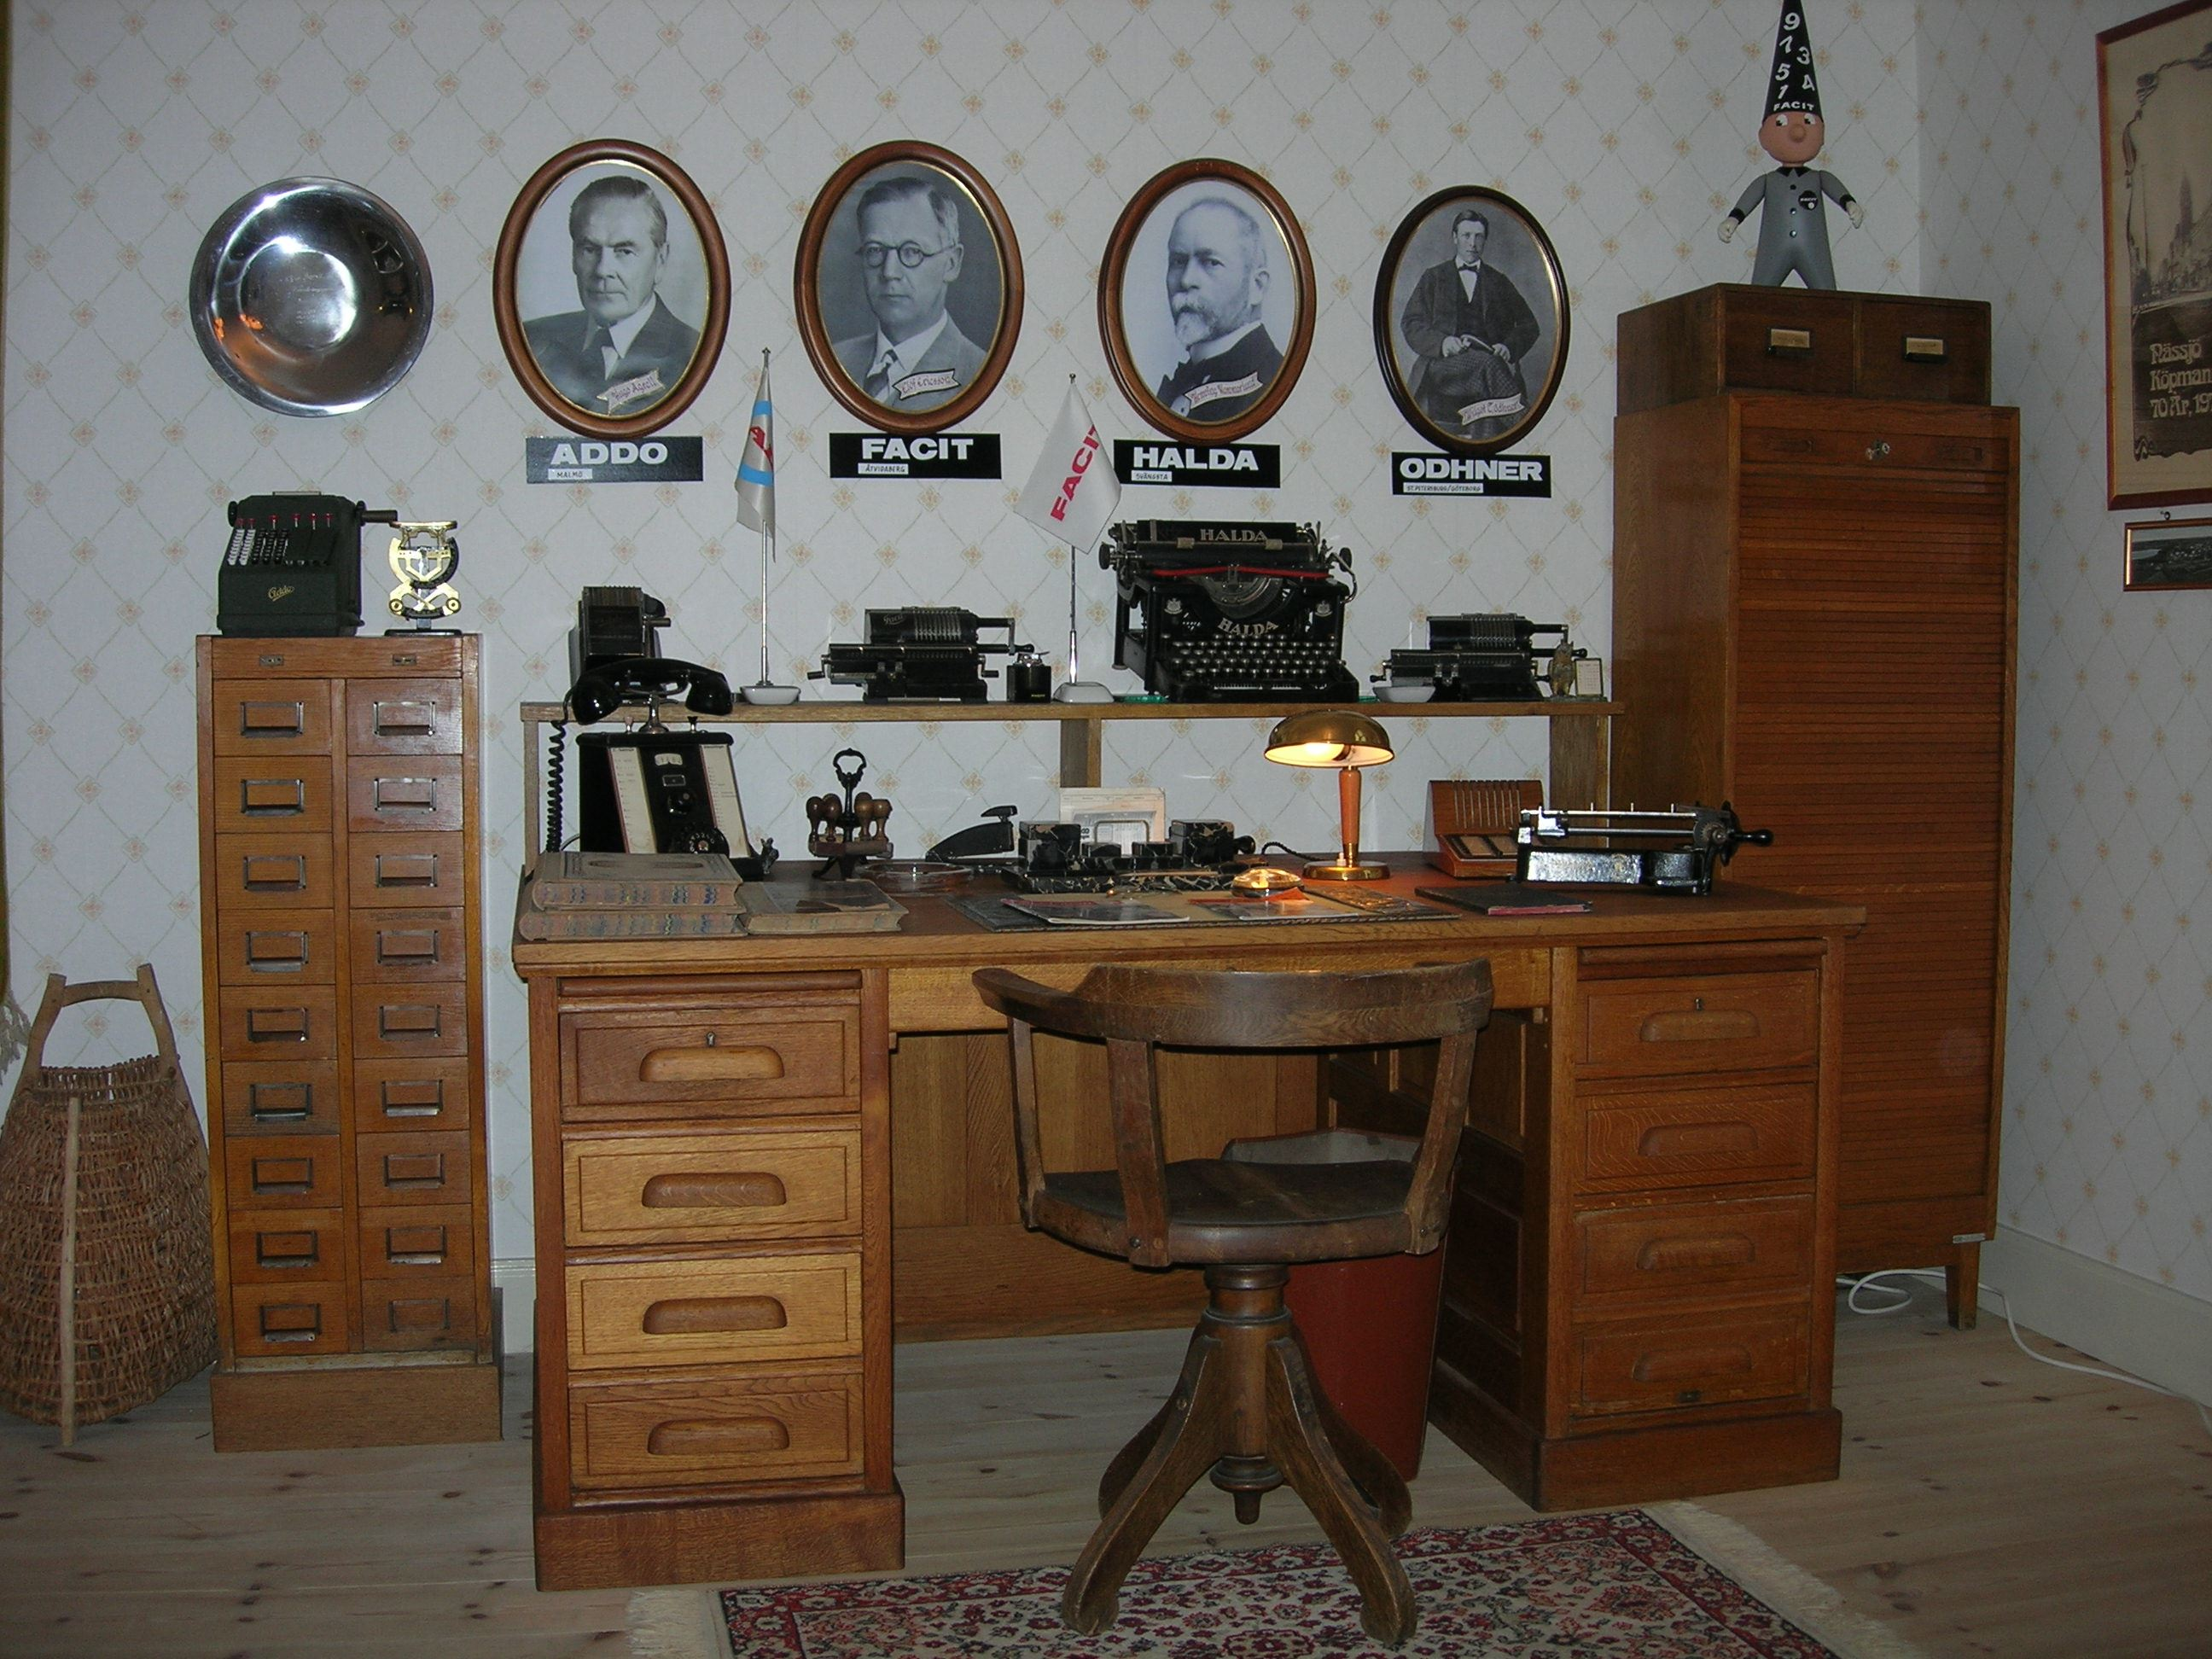 Nässjö Office Museum